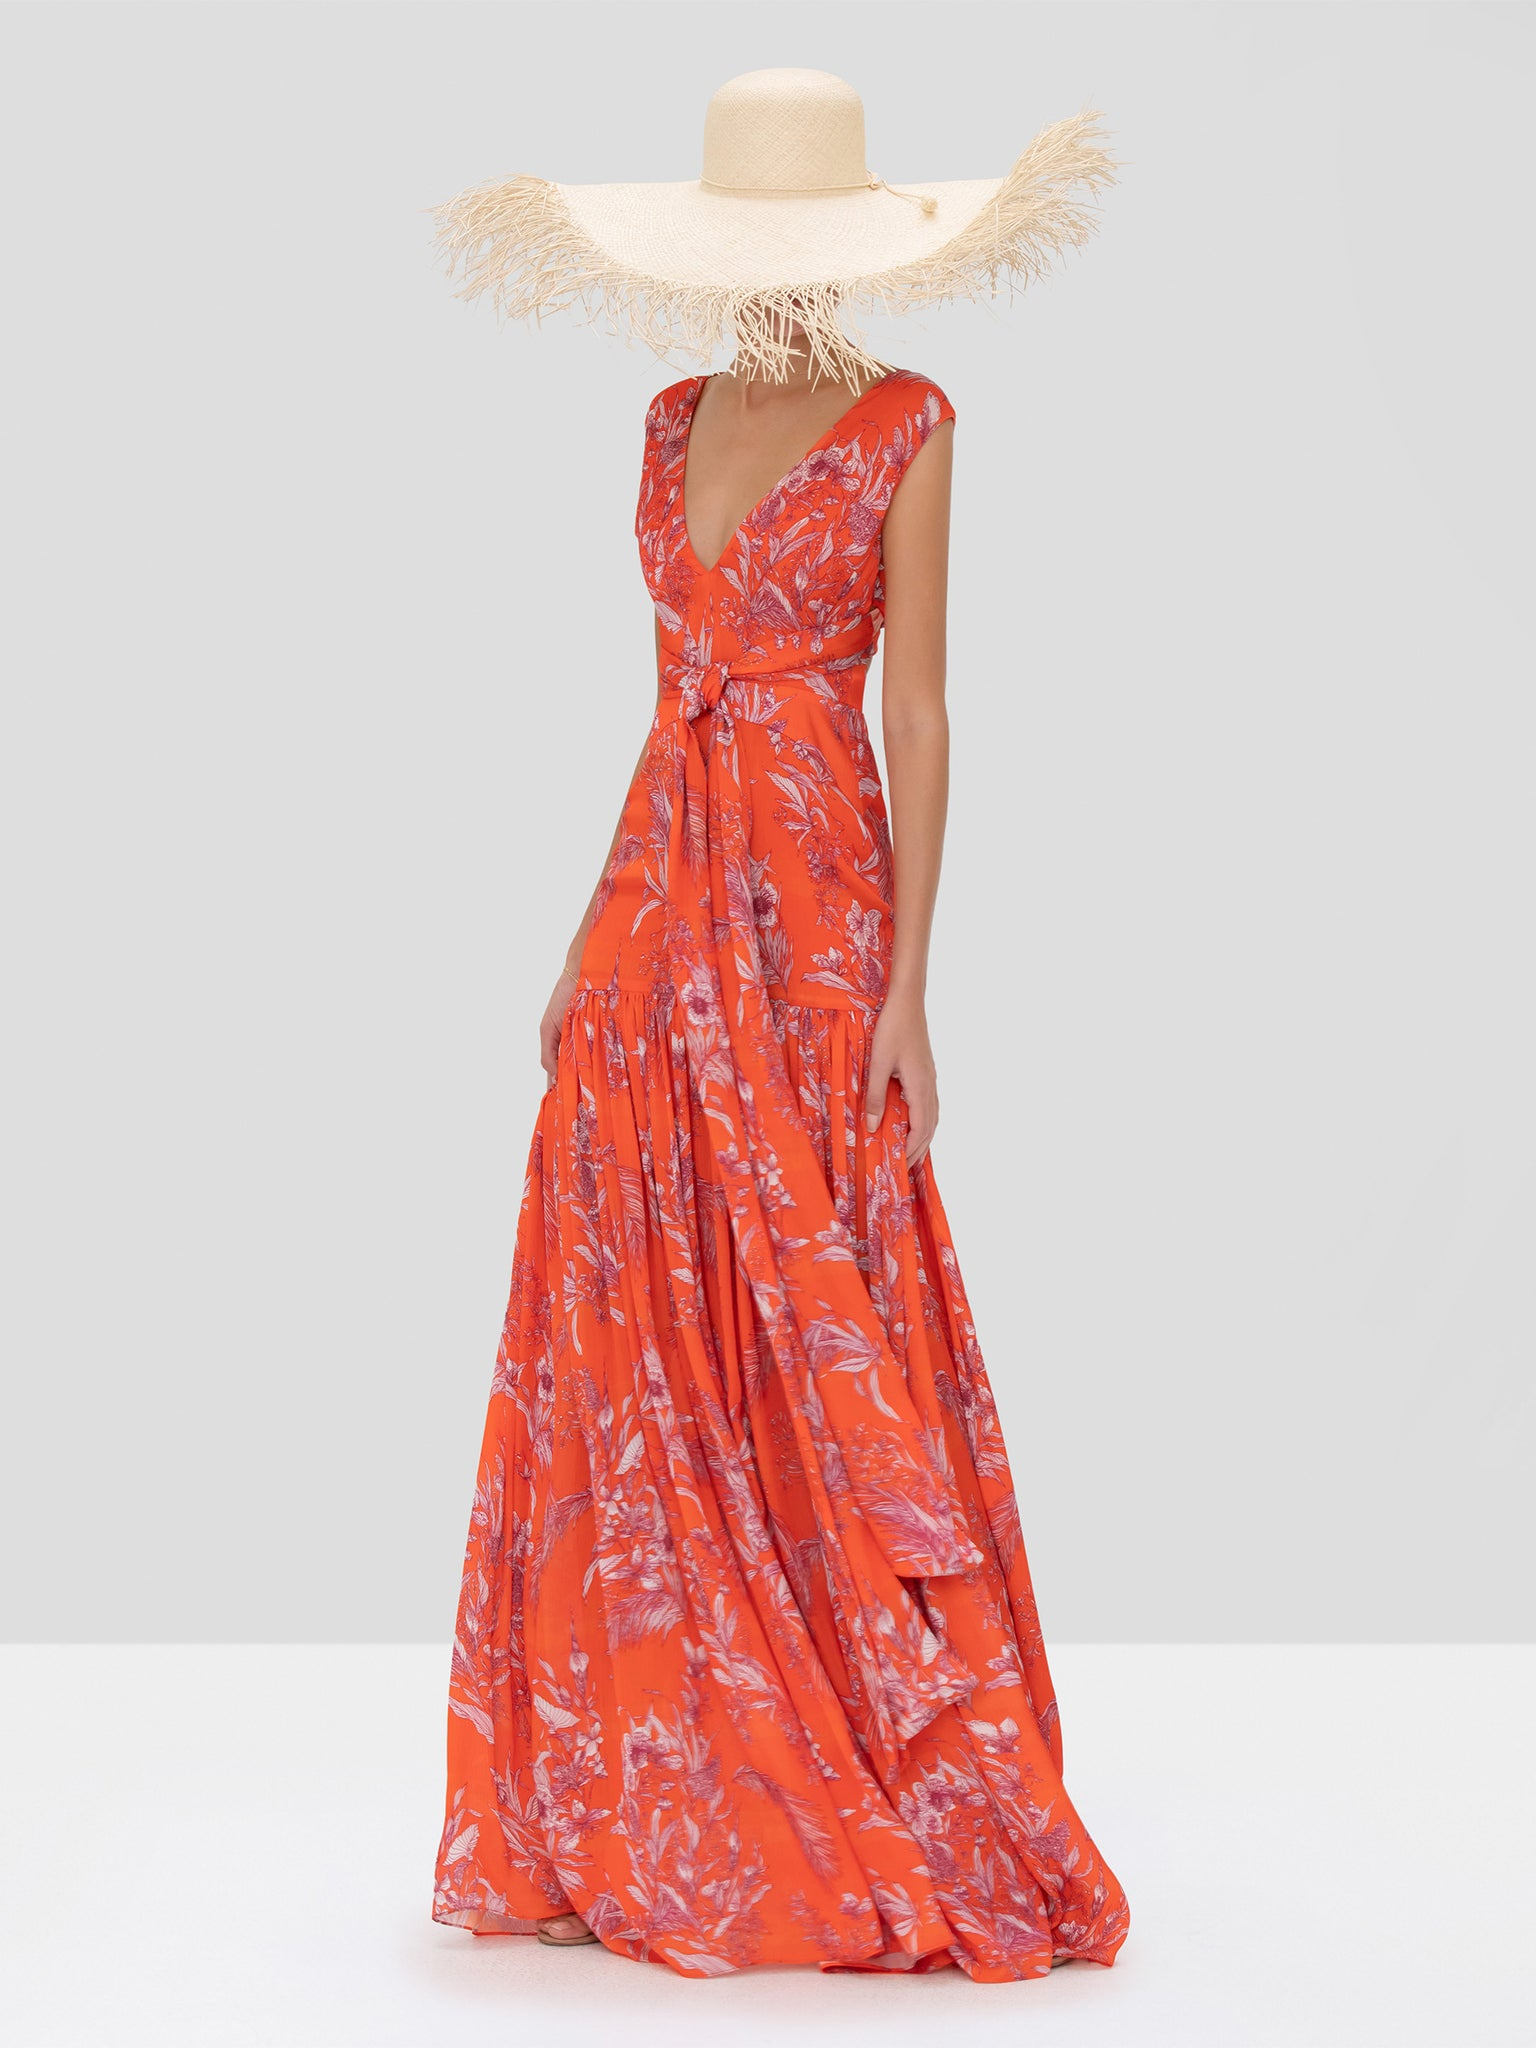 Alexis Belaya Dress in Mandarin Palm from Spring Summer 2020 Collection